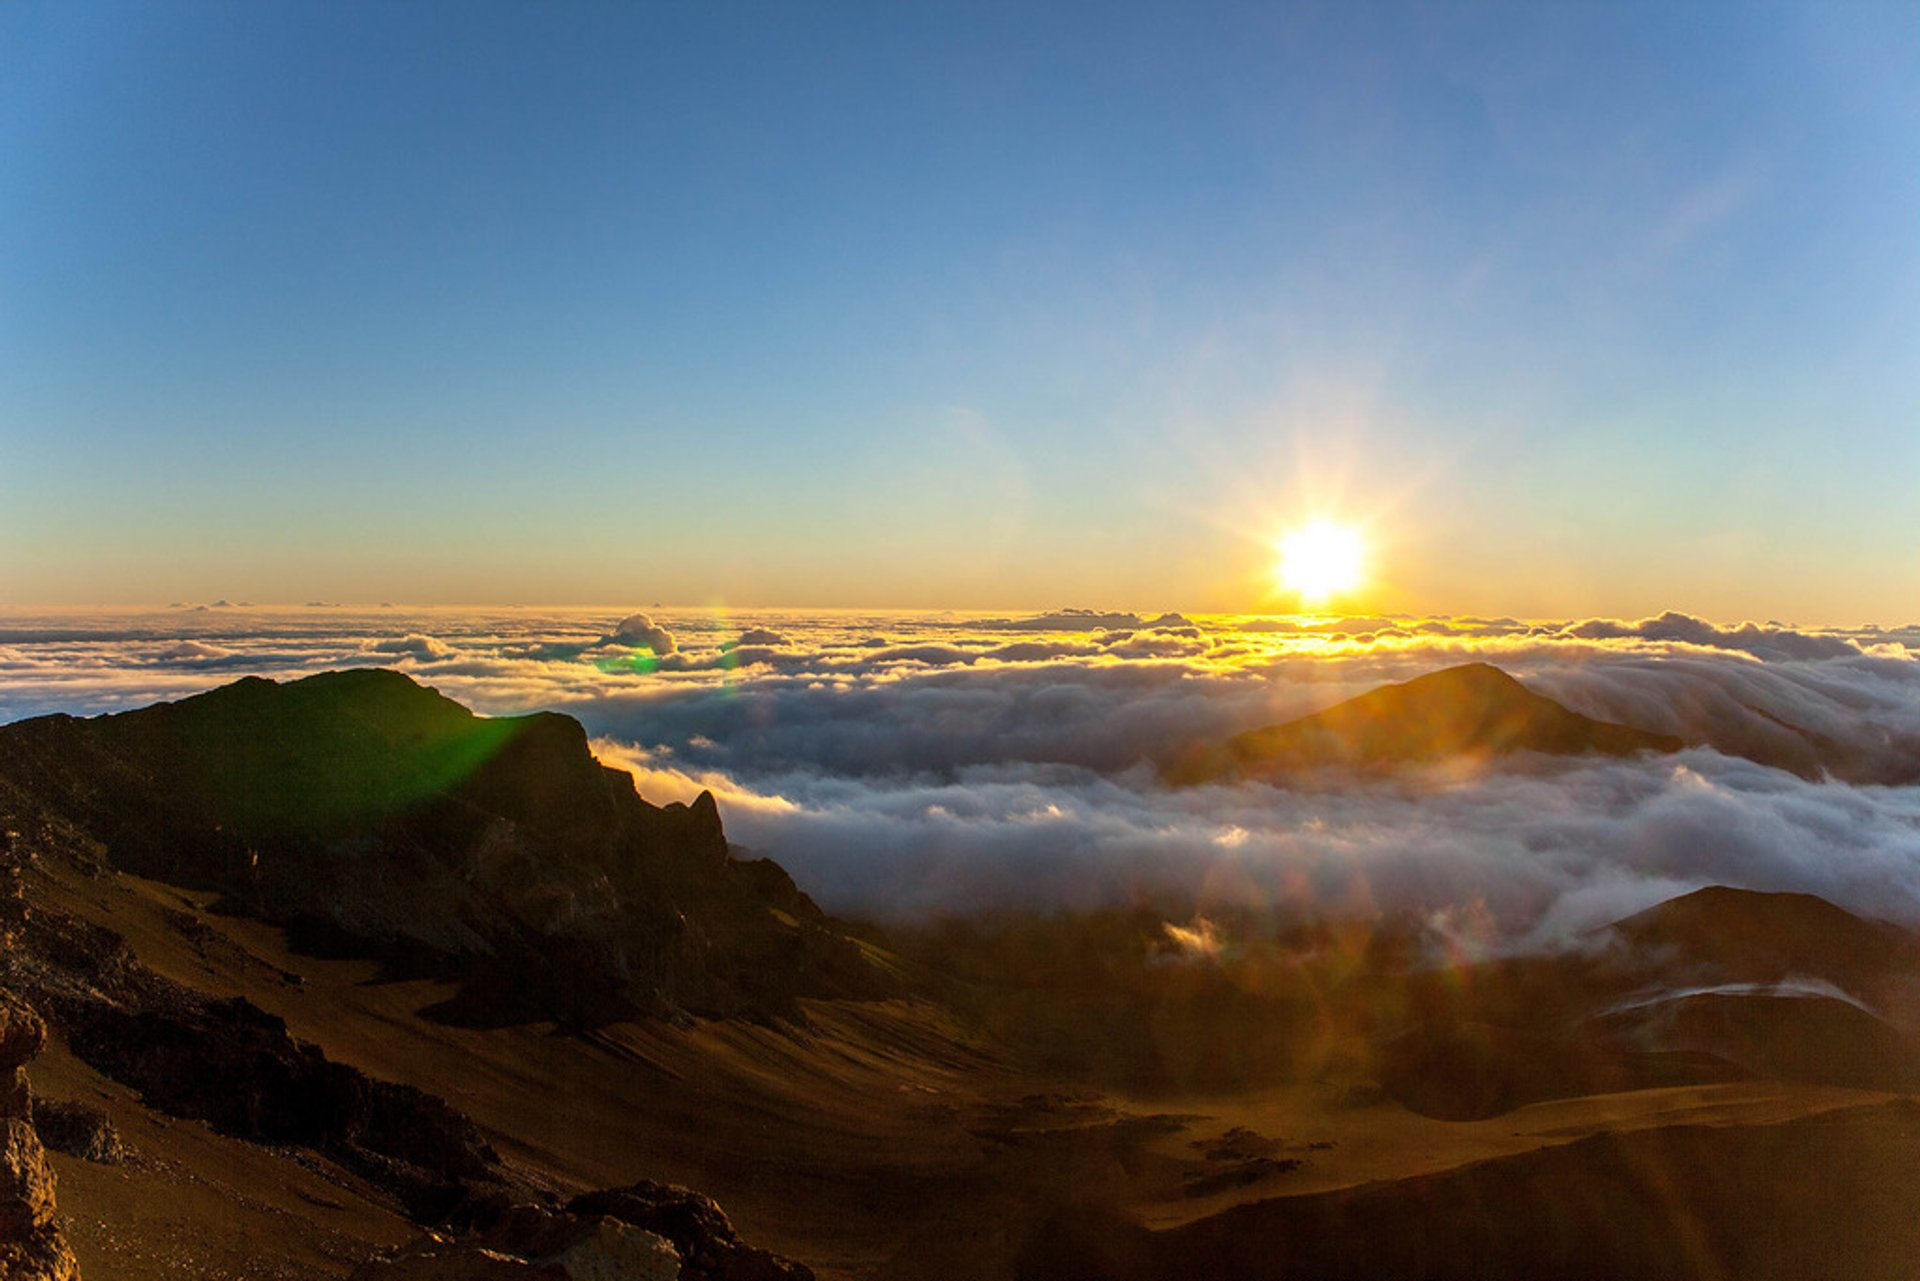 Haleakala Sunrise and Sunset in Hawaii - Best Season 2020